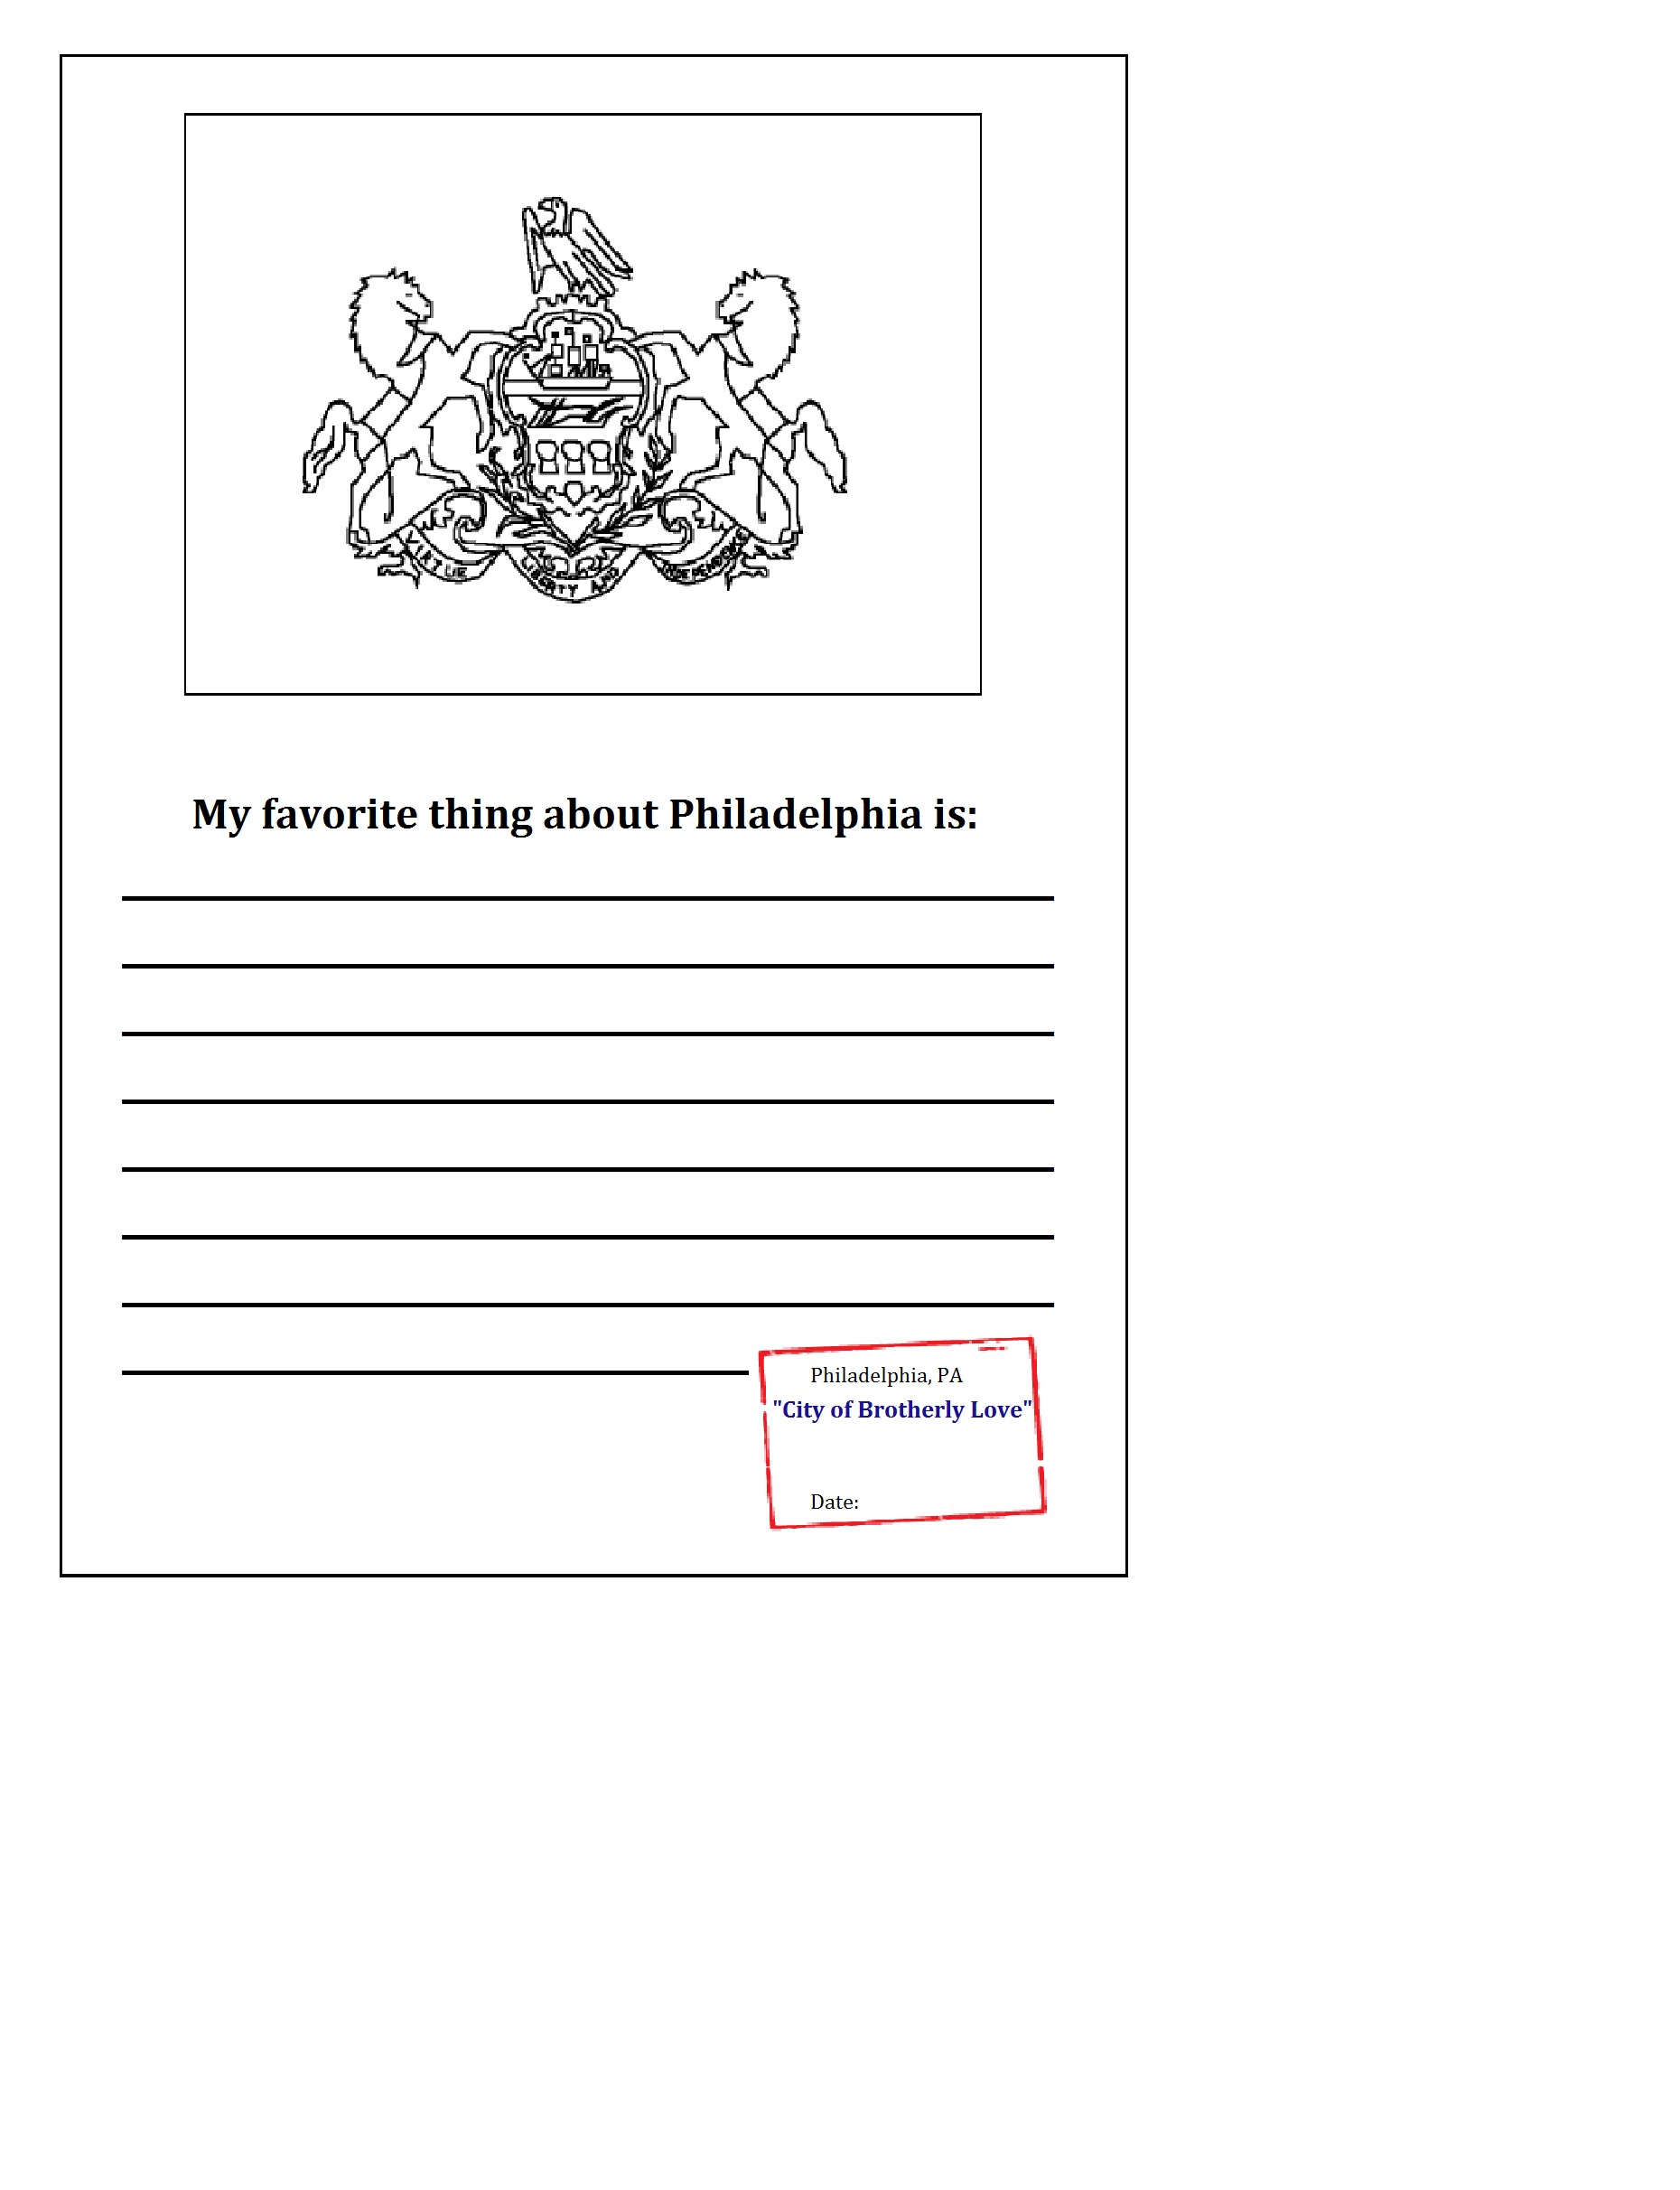 Click On The Printable Above To Download Your Own Philadelphia Passport  Stamp! Cut It Out